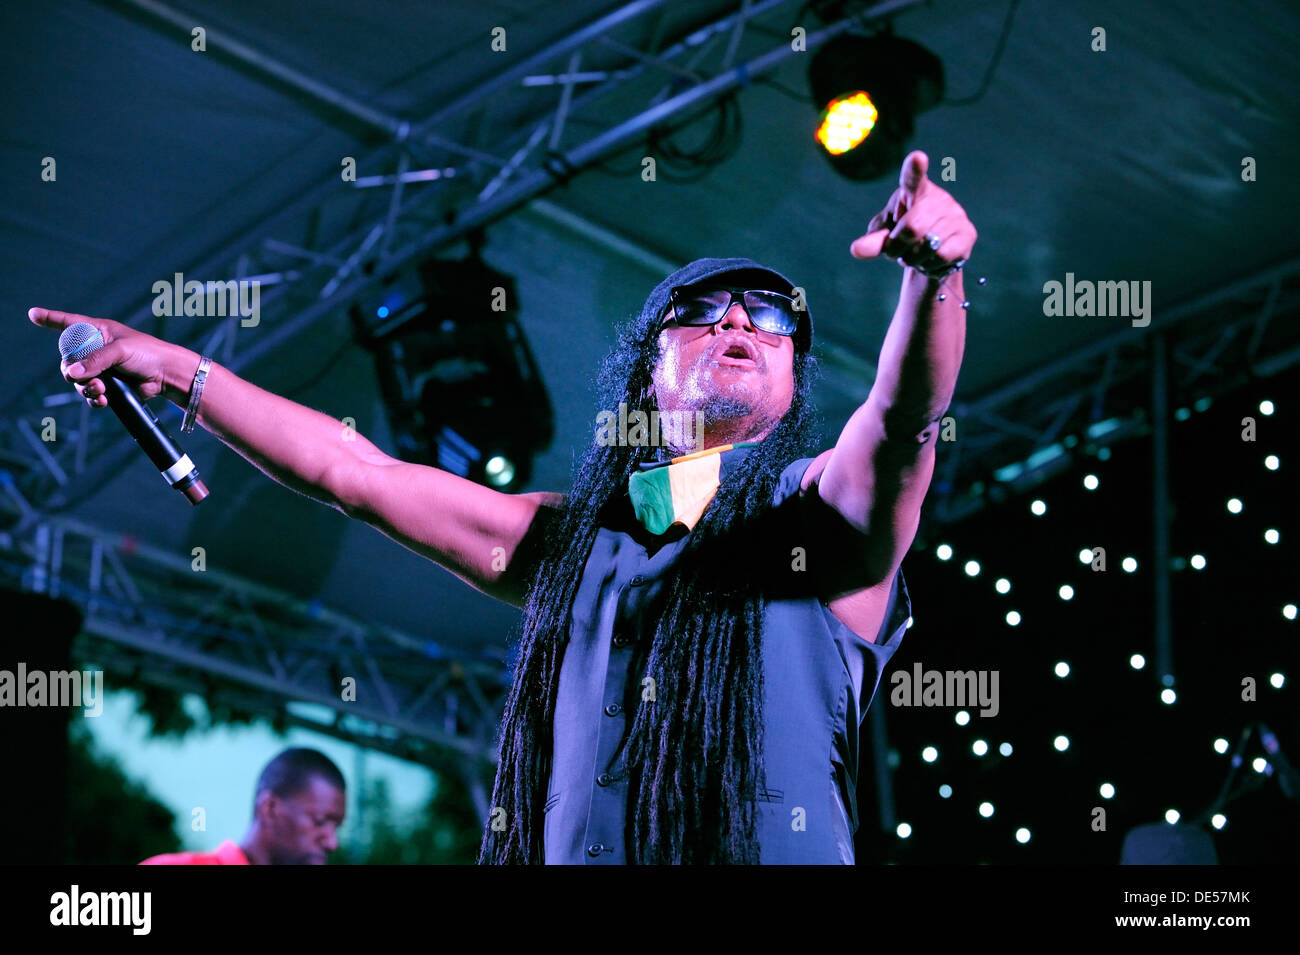 Jamaican British singer Maxi Priest on stage at the The Flyover Show, Hockley Circus, Birmingham, England, 18 August Stock Photo